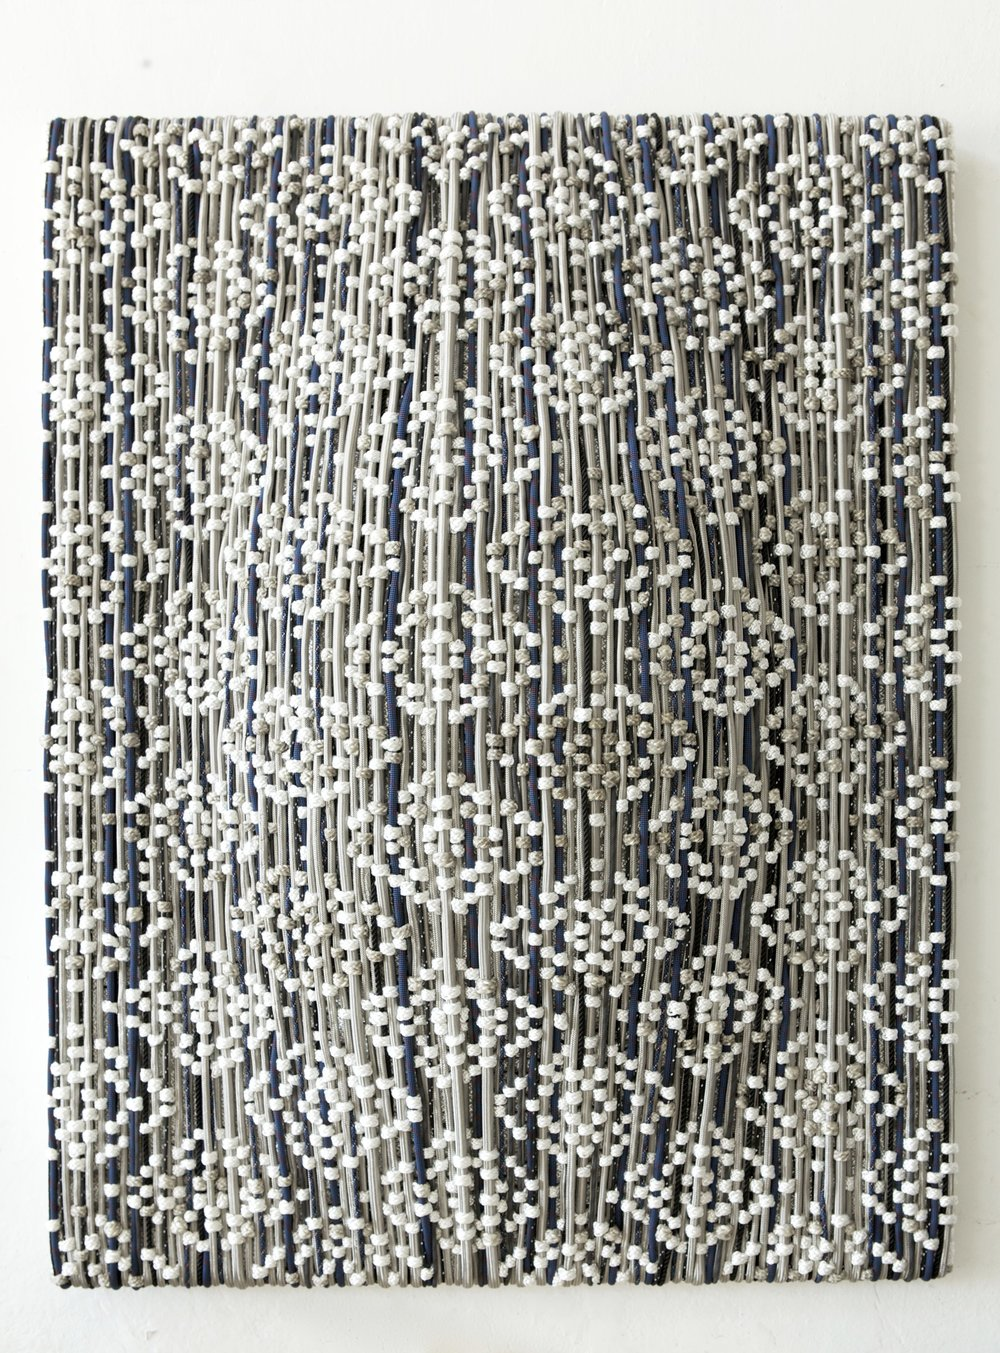 Dani Marti,  Shield – Study for a Portrait – Take 1 , 2015, stainless steel braided hose, polyester, nylon, rubber and leather on aluminium frame, 180 x 140 x 30cm.